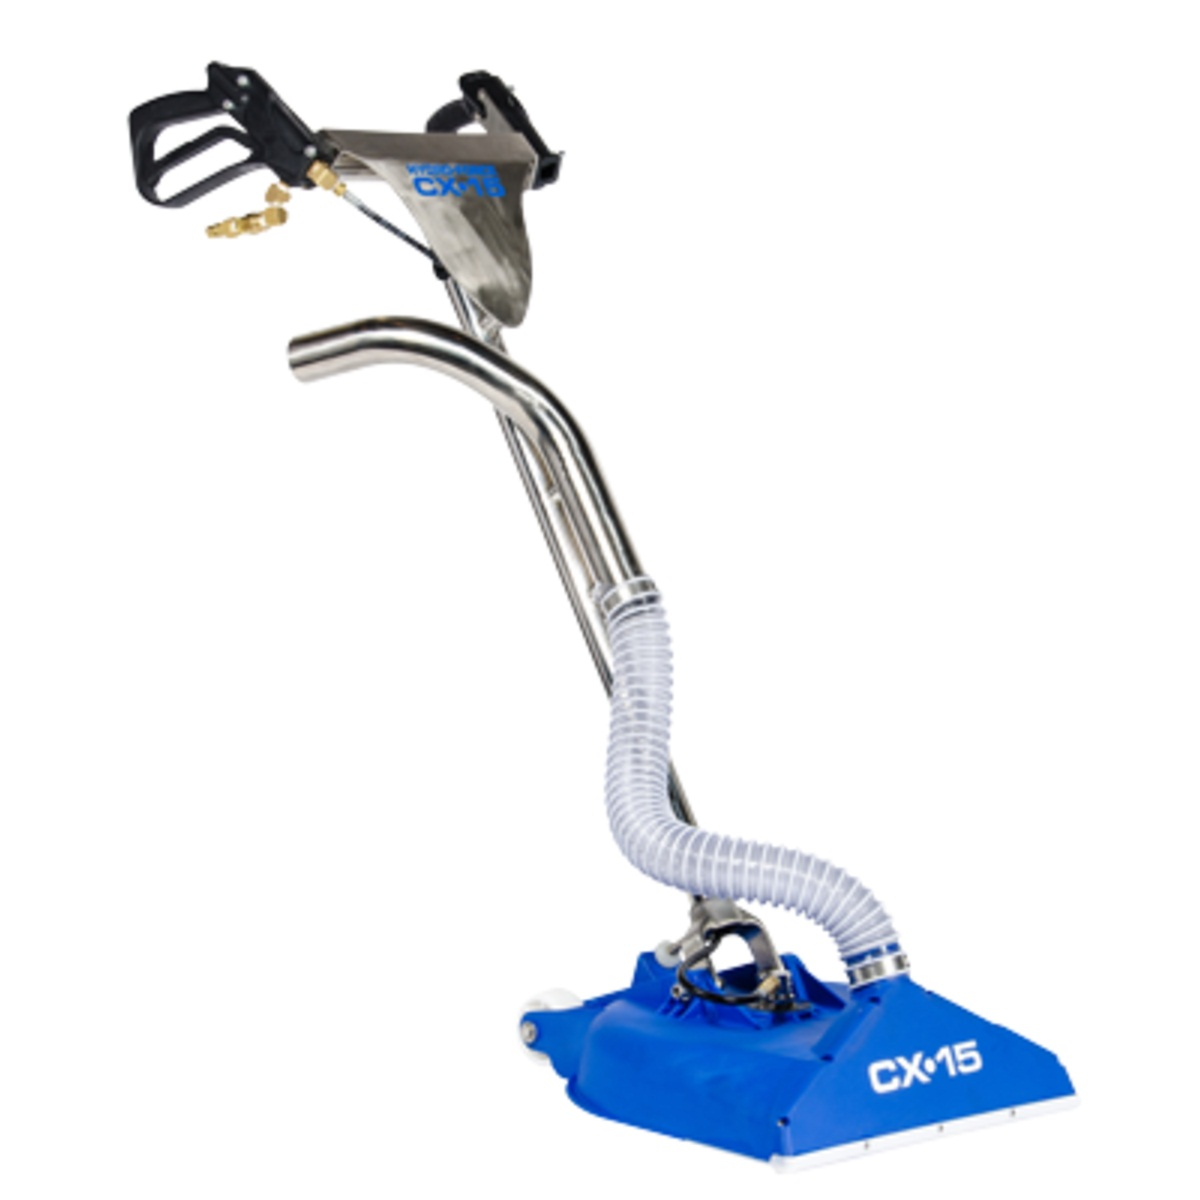 Tile floor cleaner machine floor and spinner w air water recovery equipment hard surface dailygadgetfo Image collections